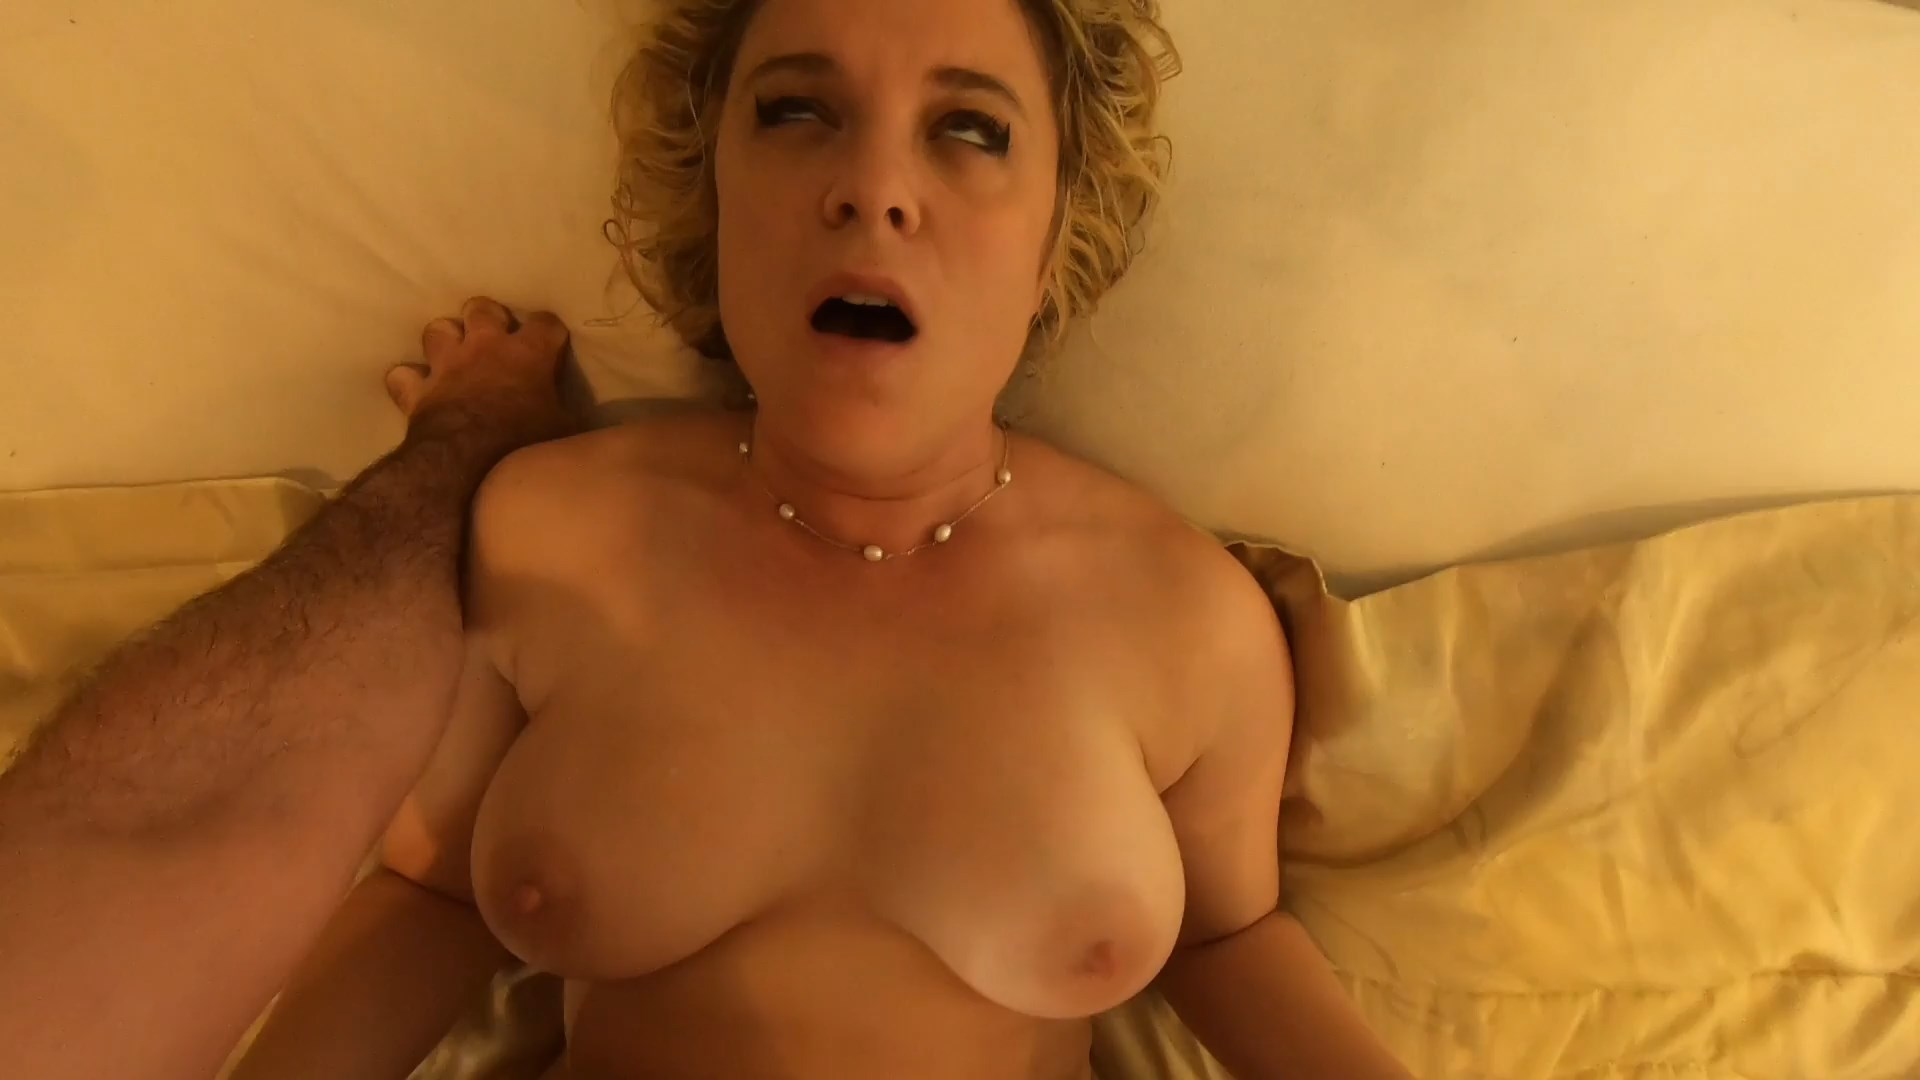 Erin Electra - Your stepmom gets stuck under the bed